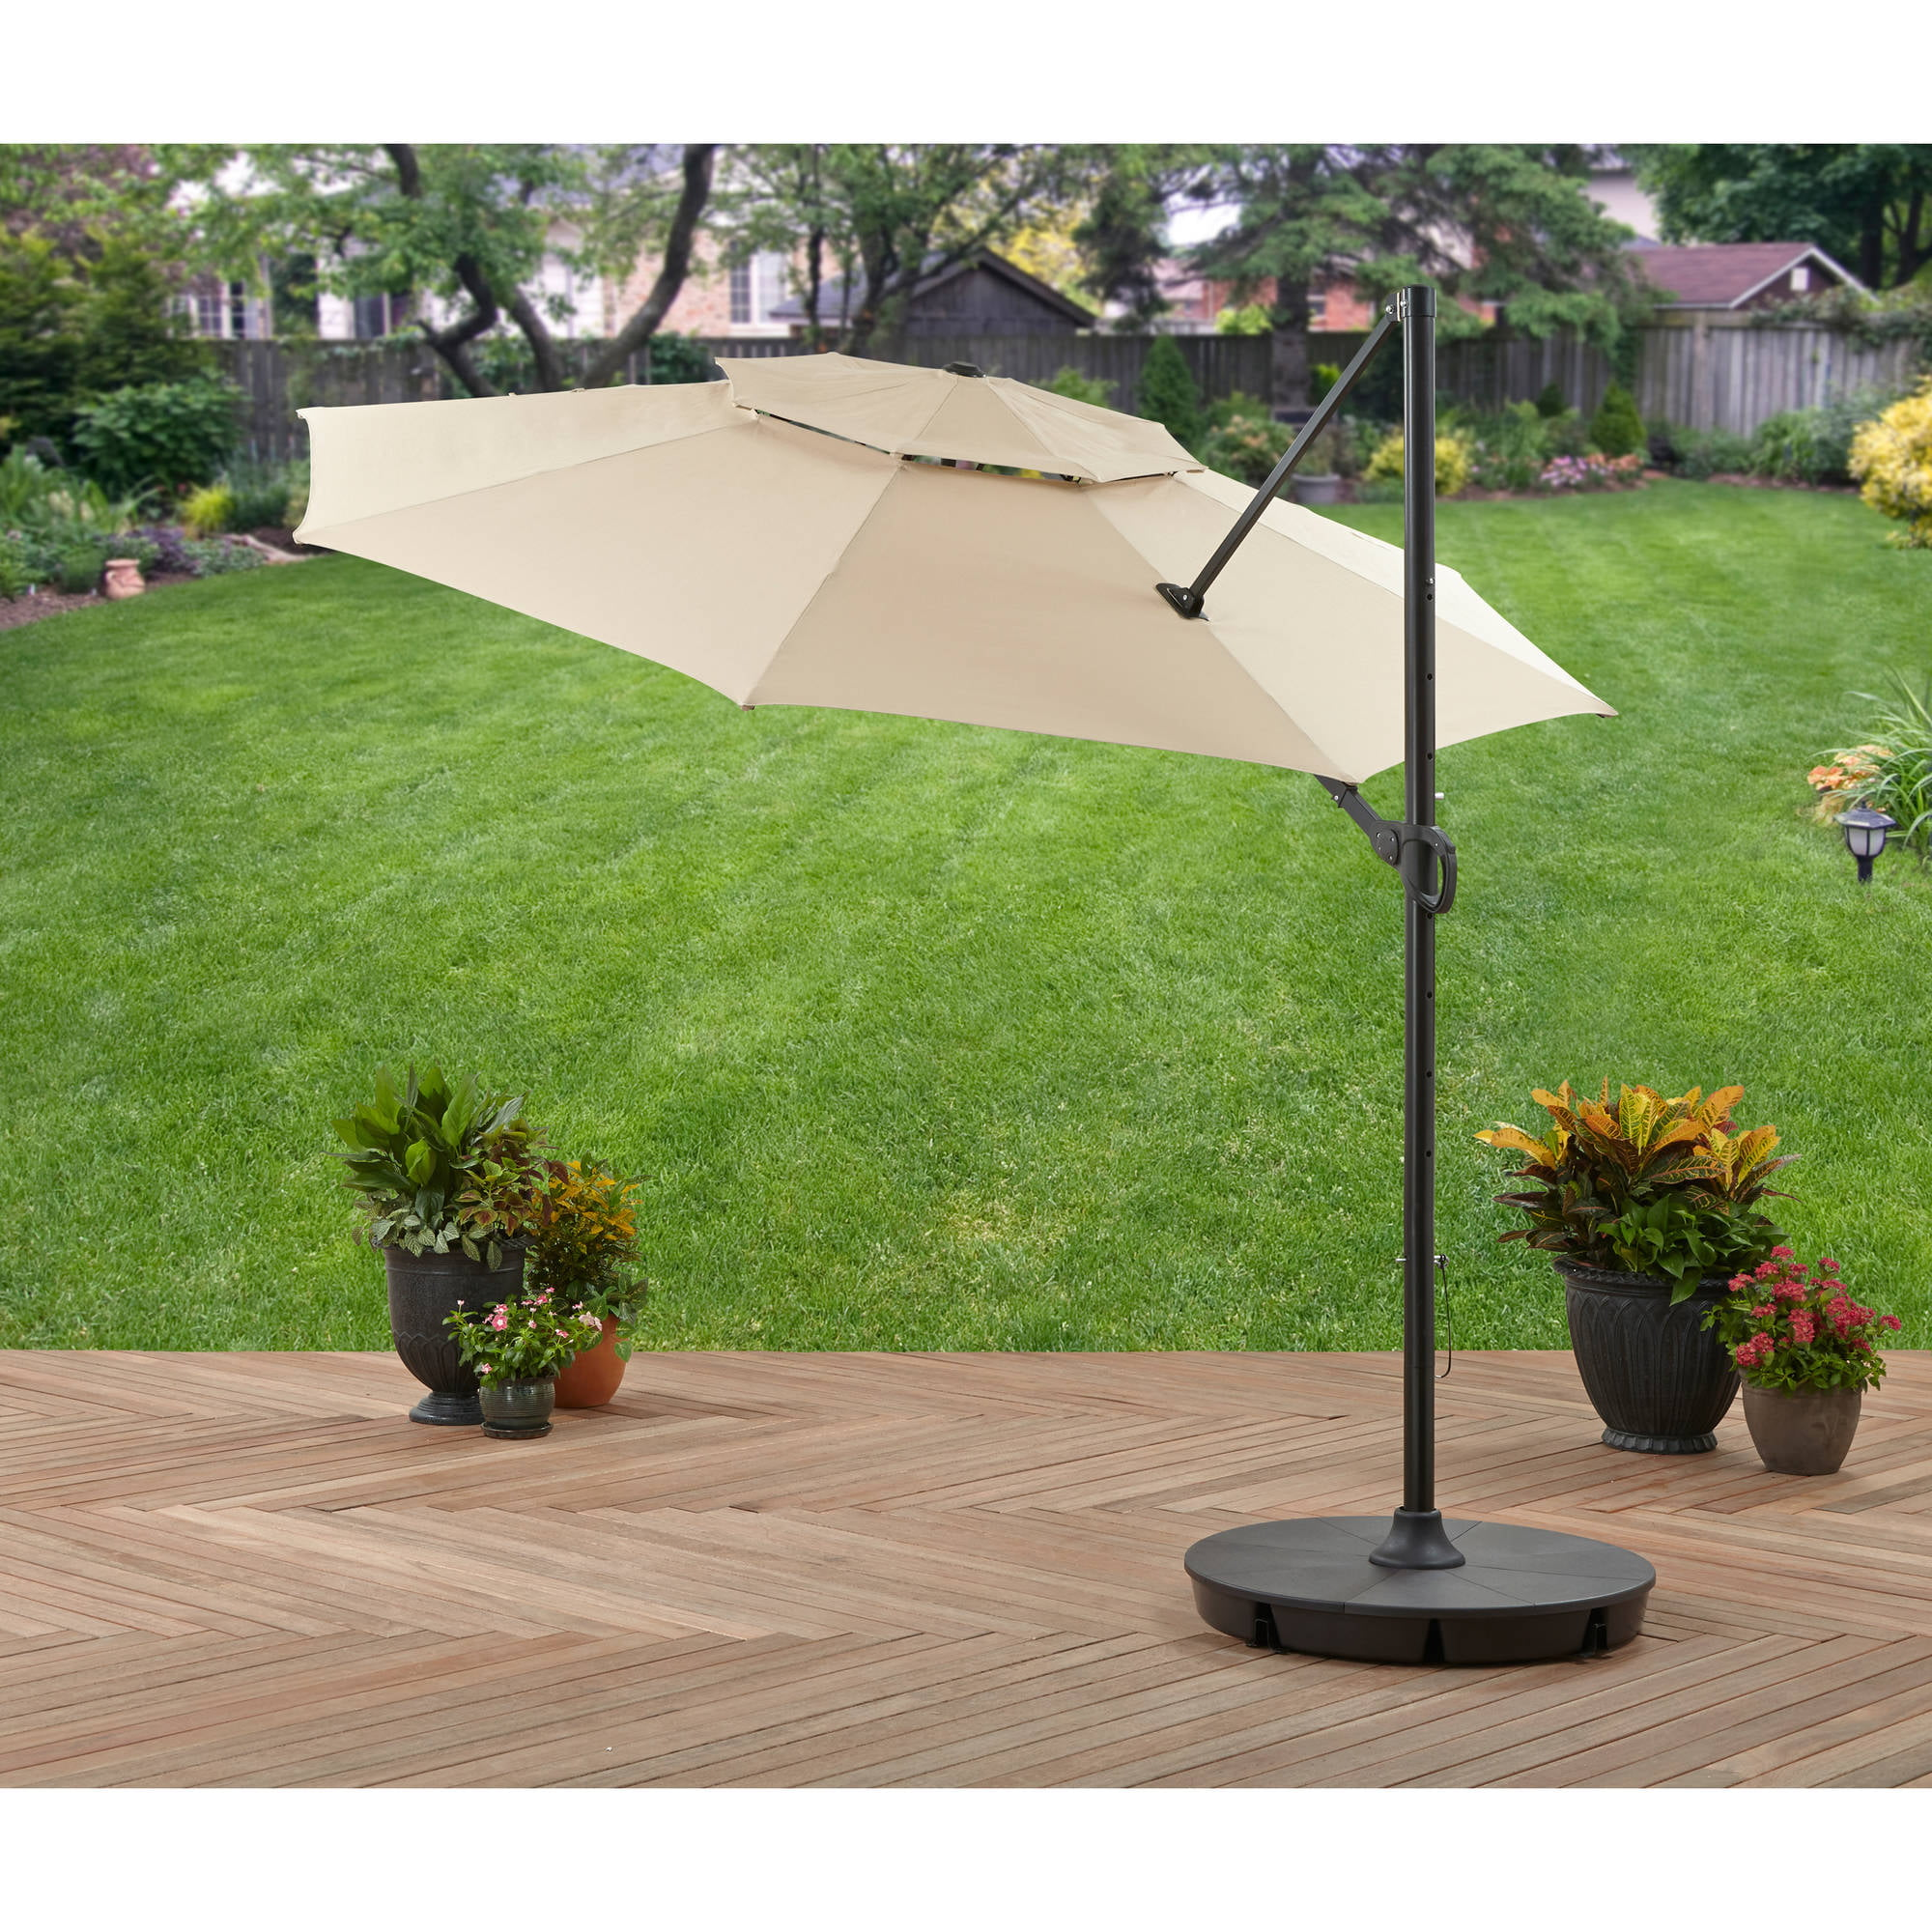 Better Homes And Gardens 11 Offset Umbrella With Base Tan